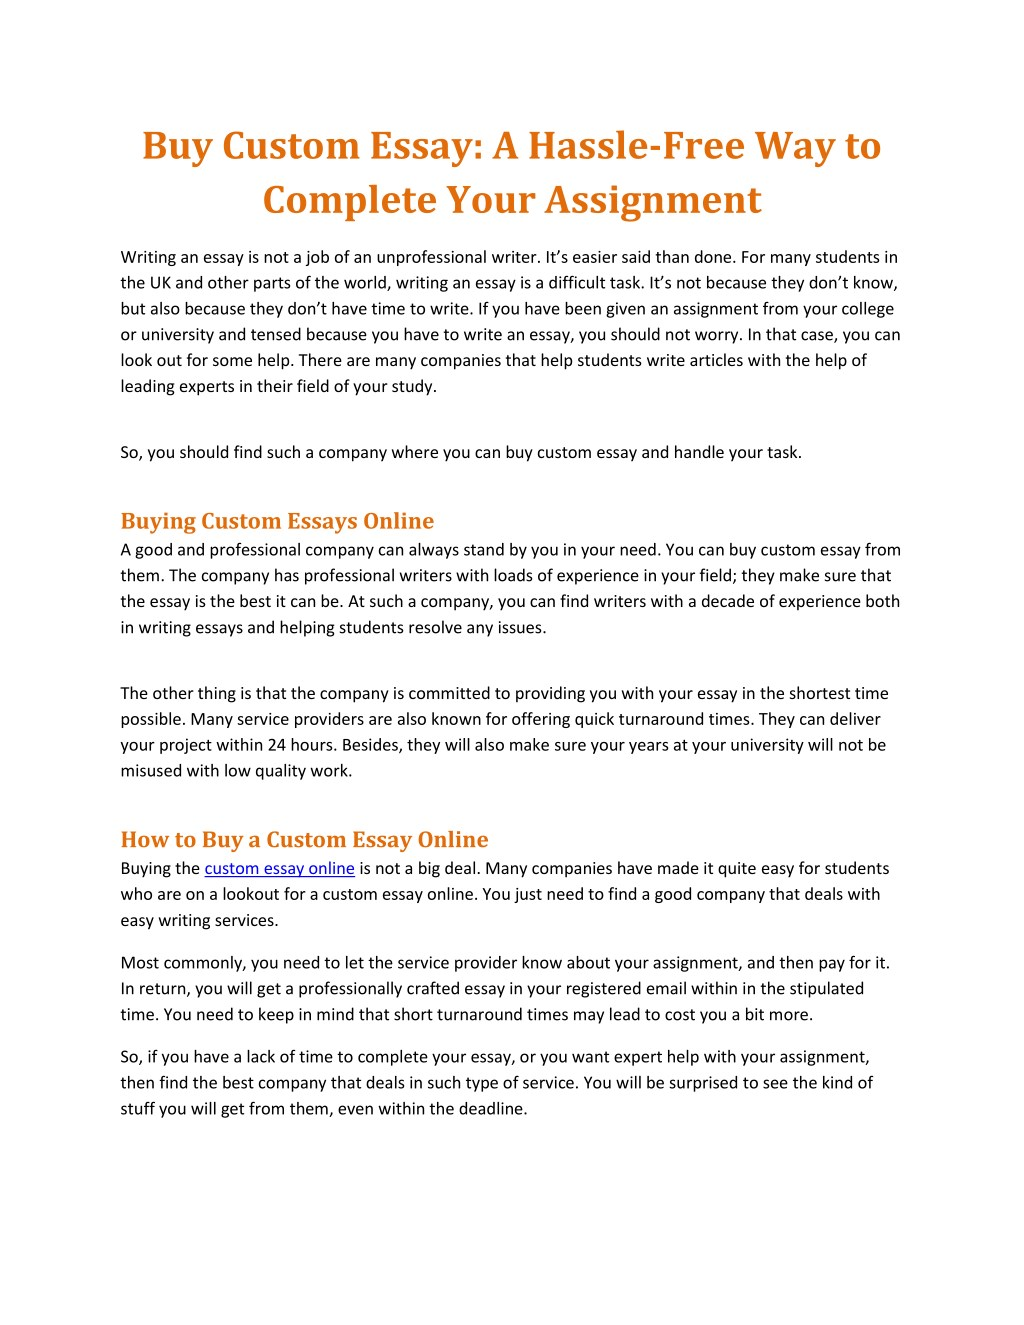 001 Essay Example Custom Order Buy Hassle Free Way To Complete Frightening Full